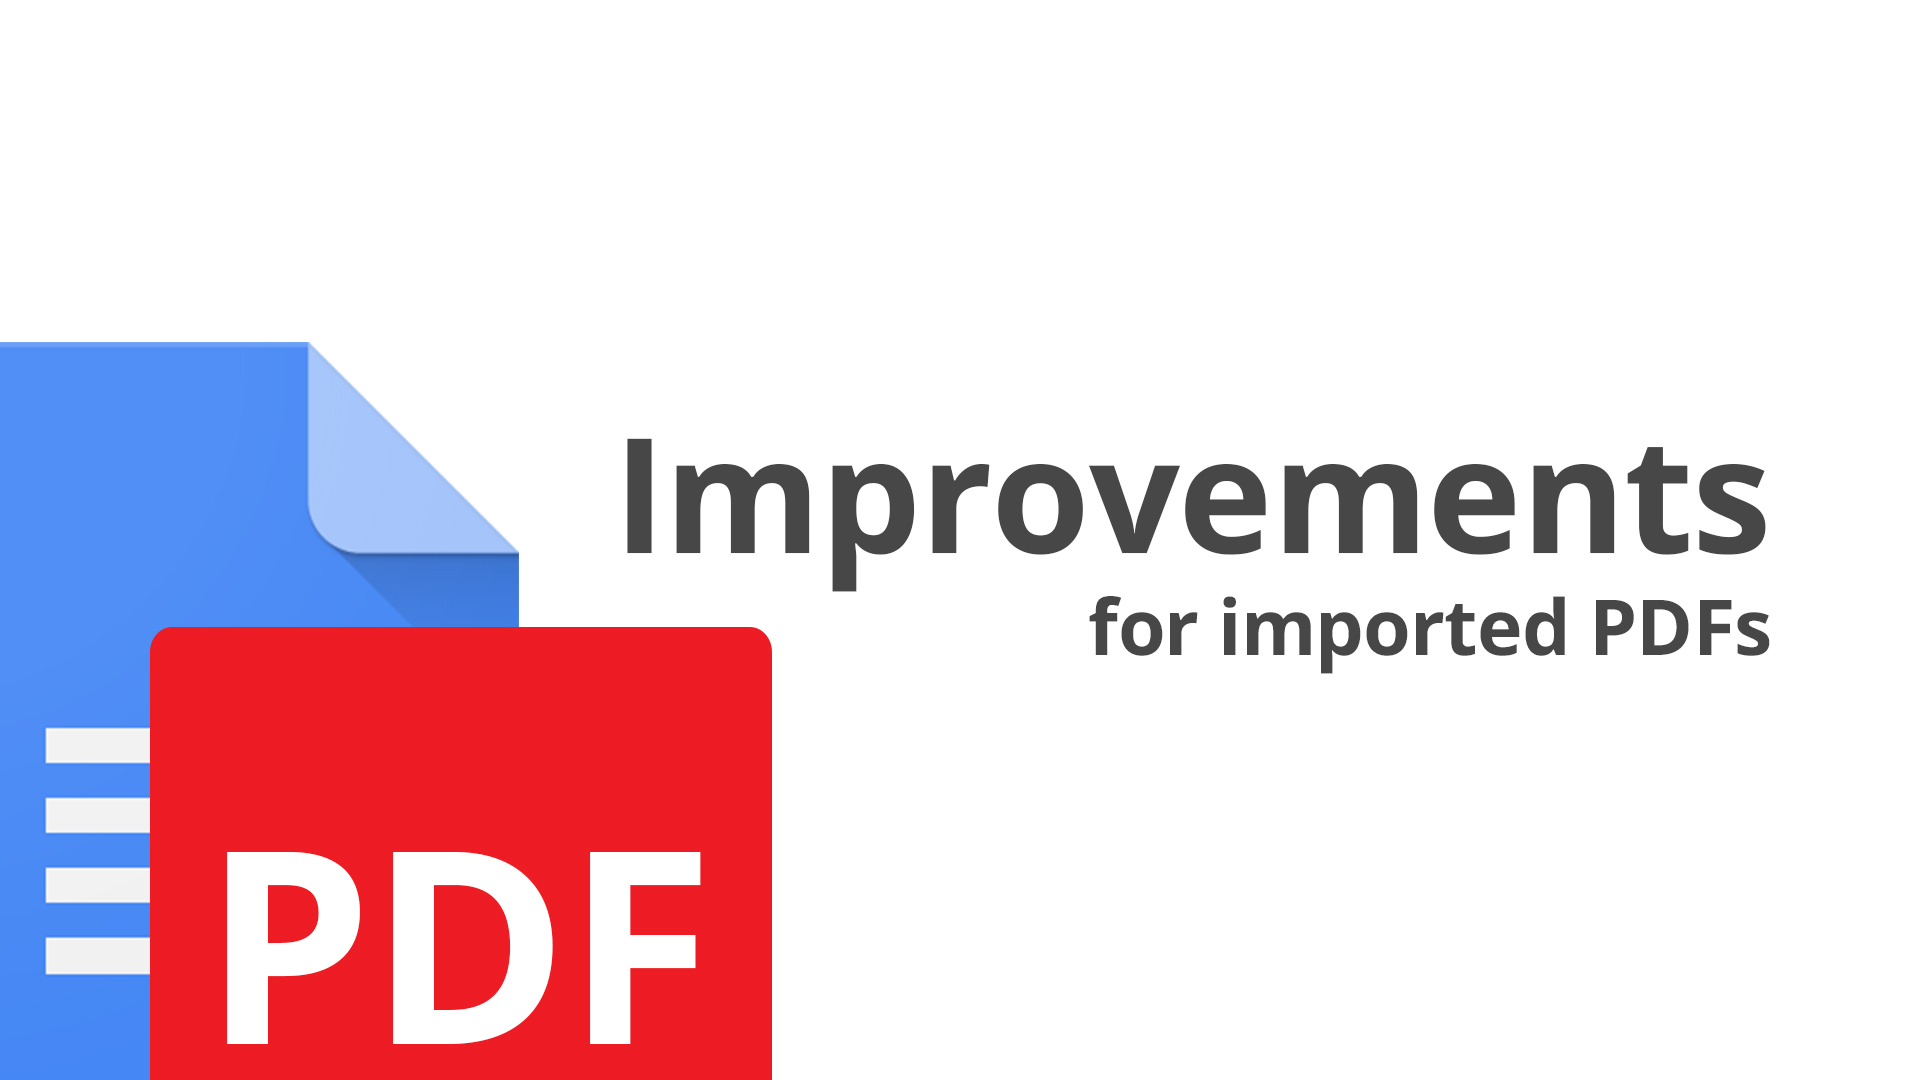 PDFs imported to Google Docs get improved support for images, multi-column formatting, and more